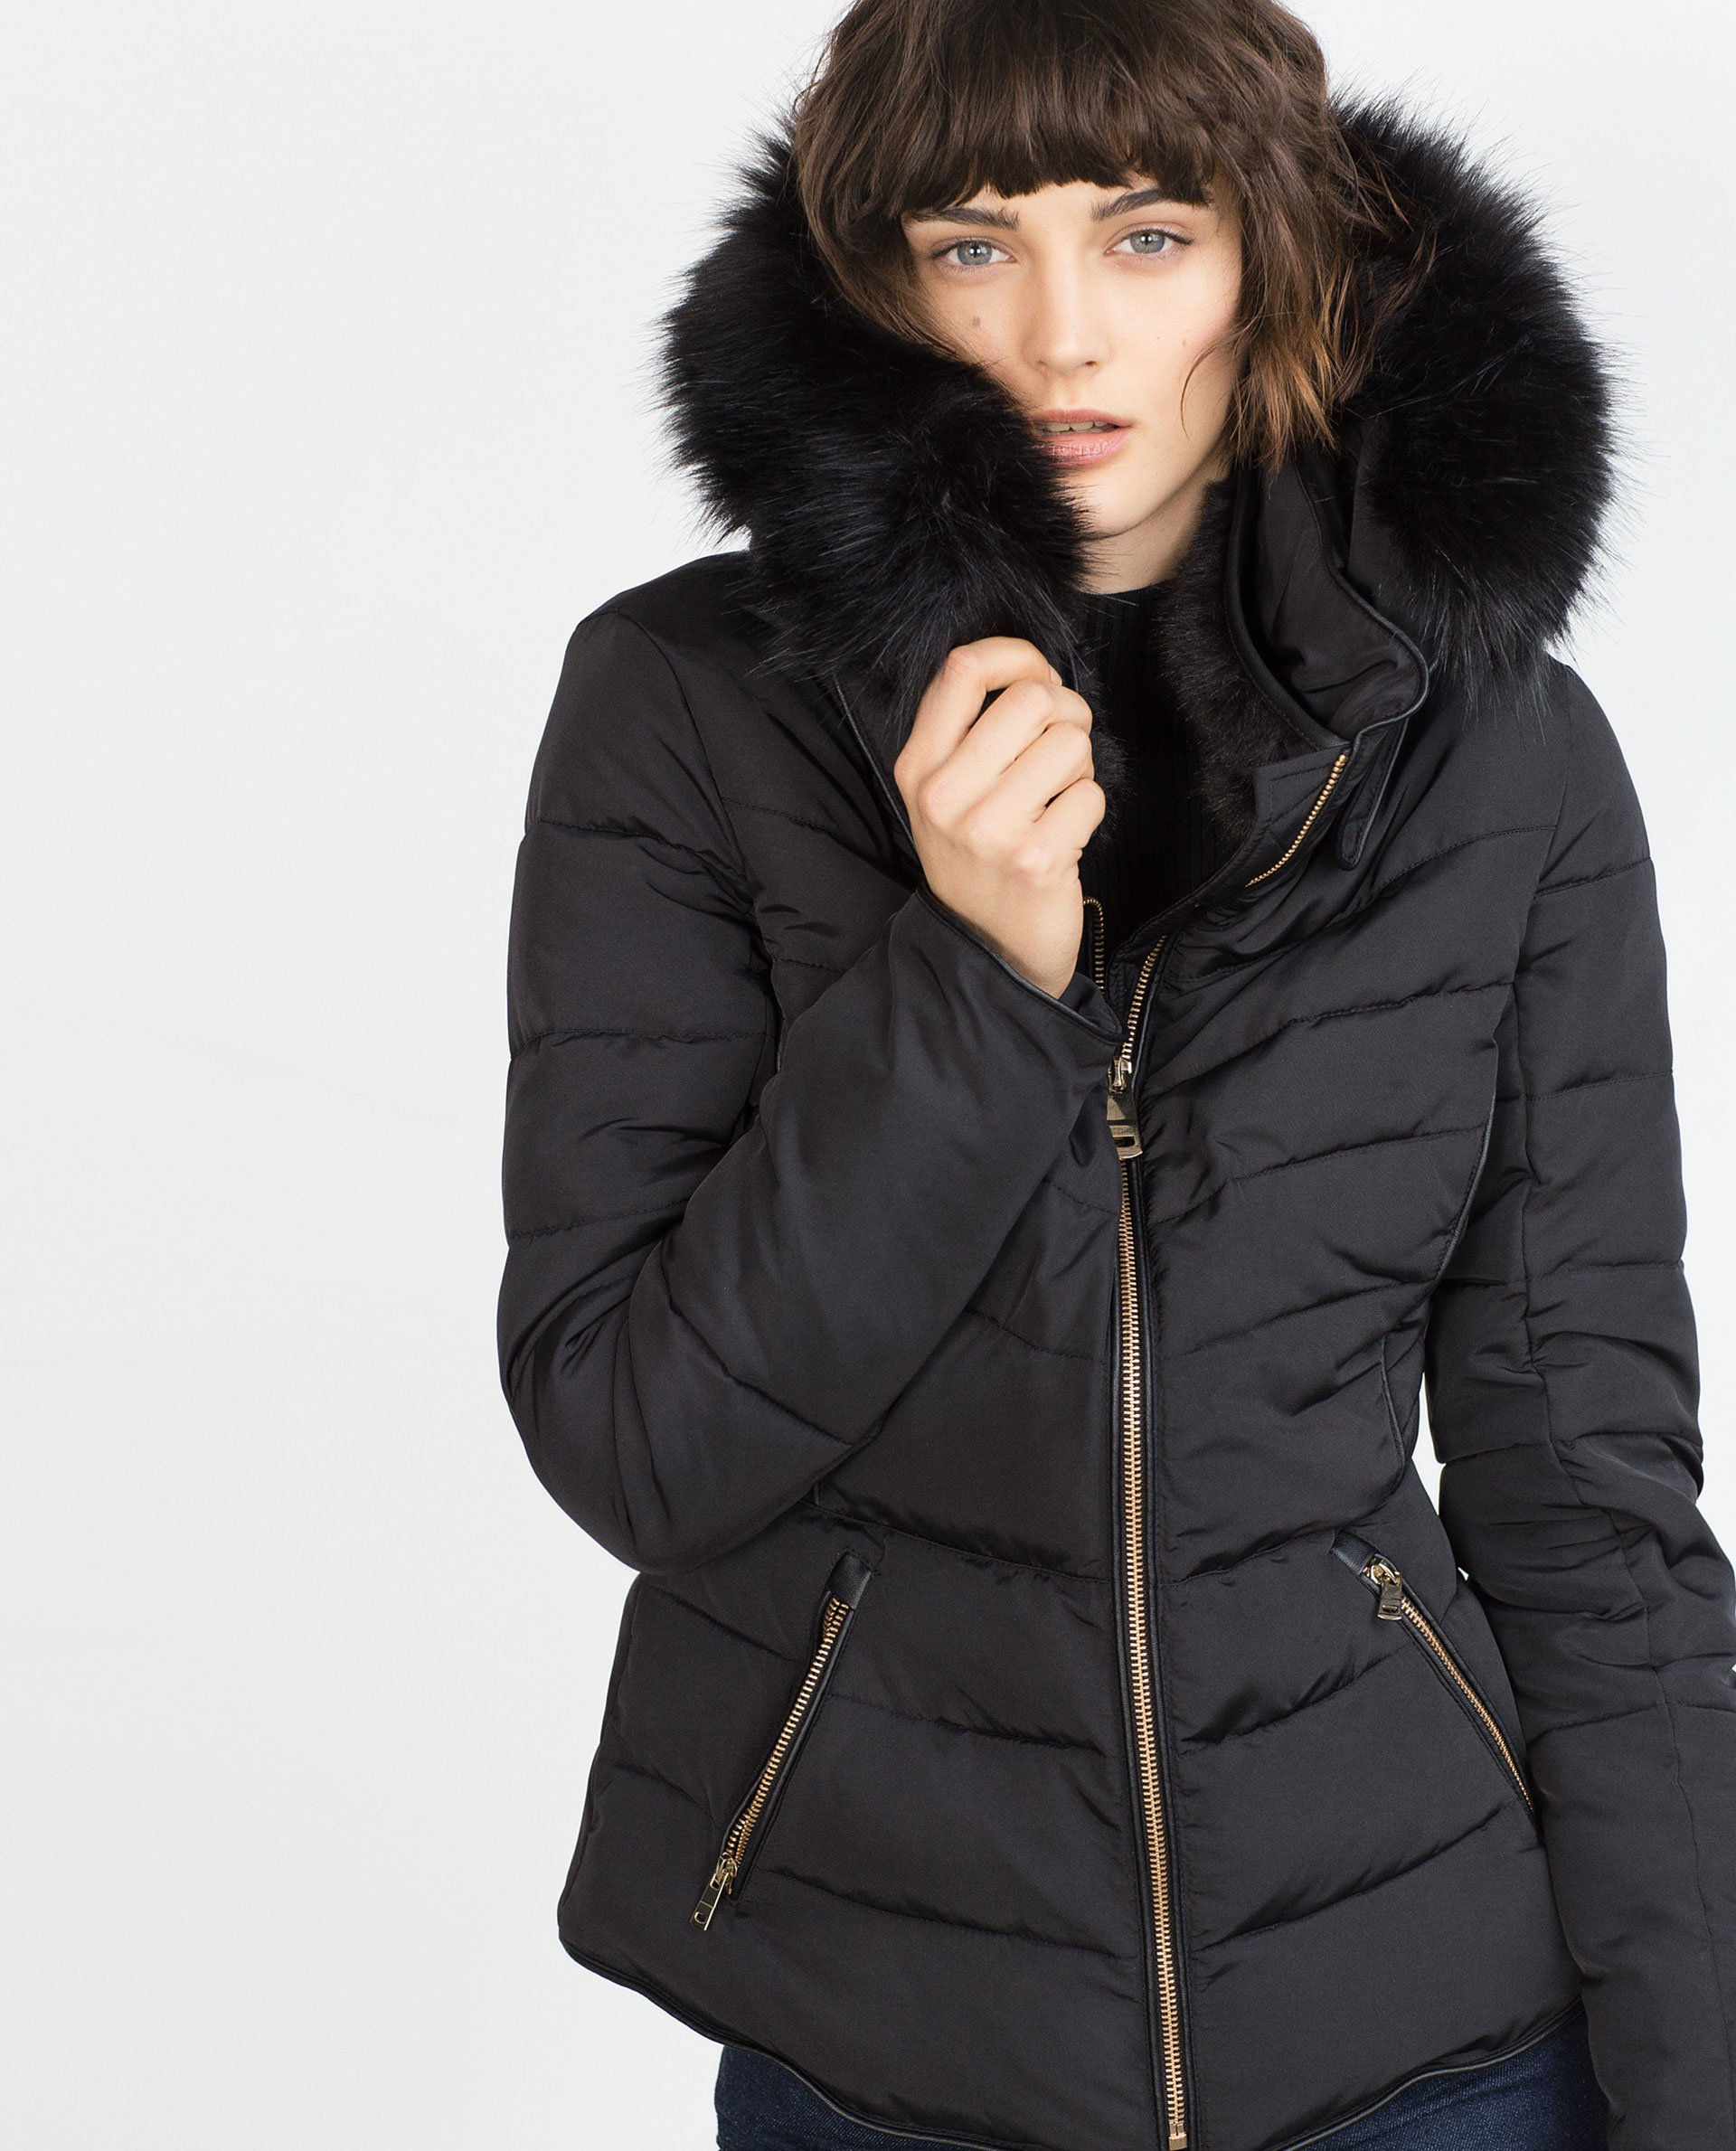 Images of Zara Coats Womens - Reikian